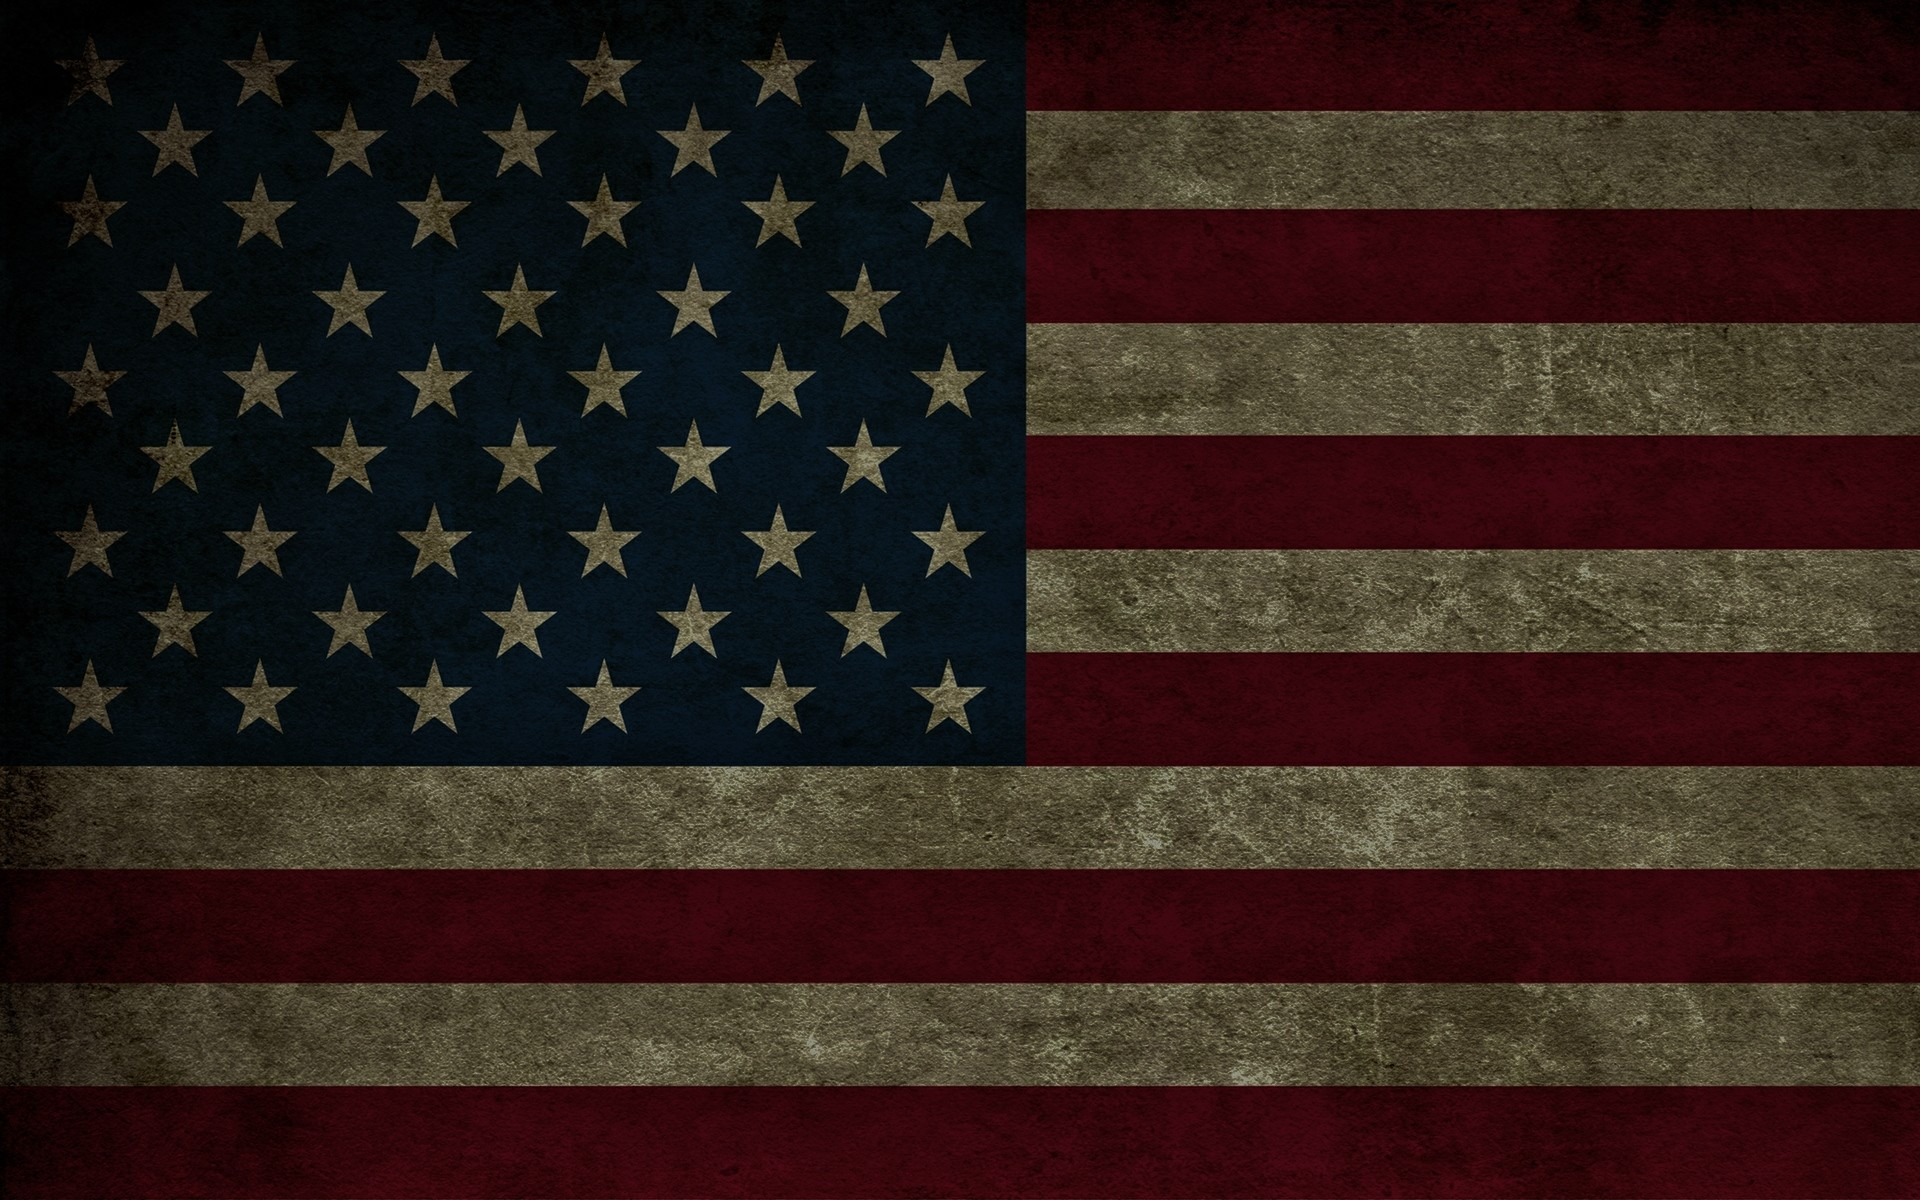 American flag background tumblr tumblr american flag wallpaper american flag background tumblr voltagebd Image collections